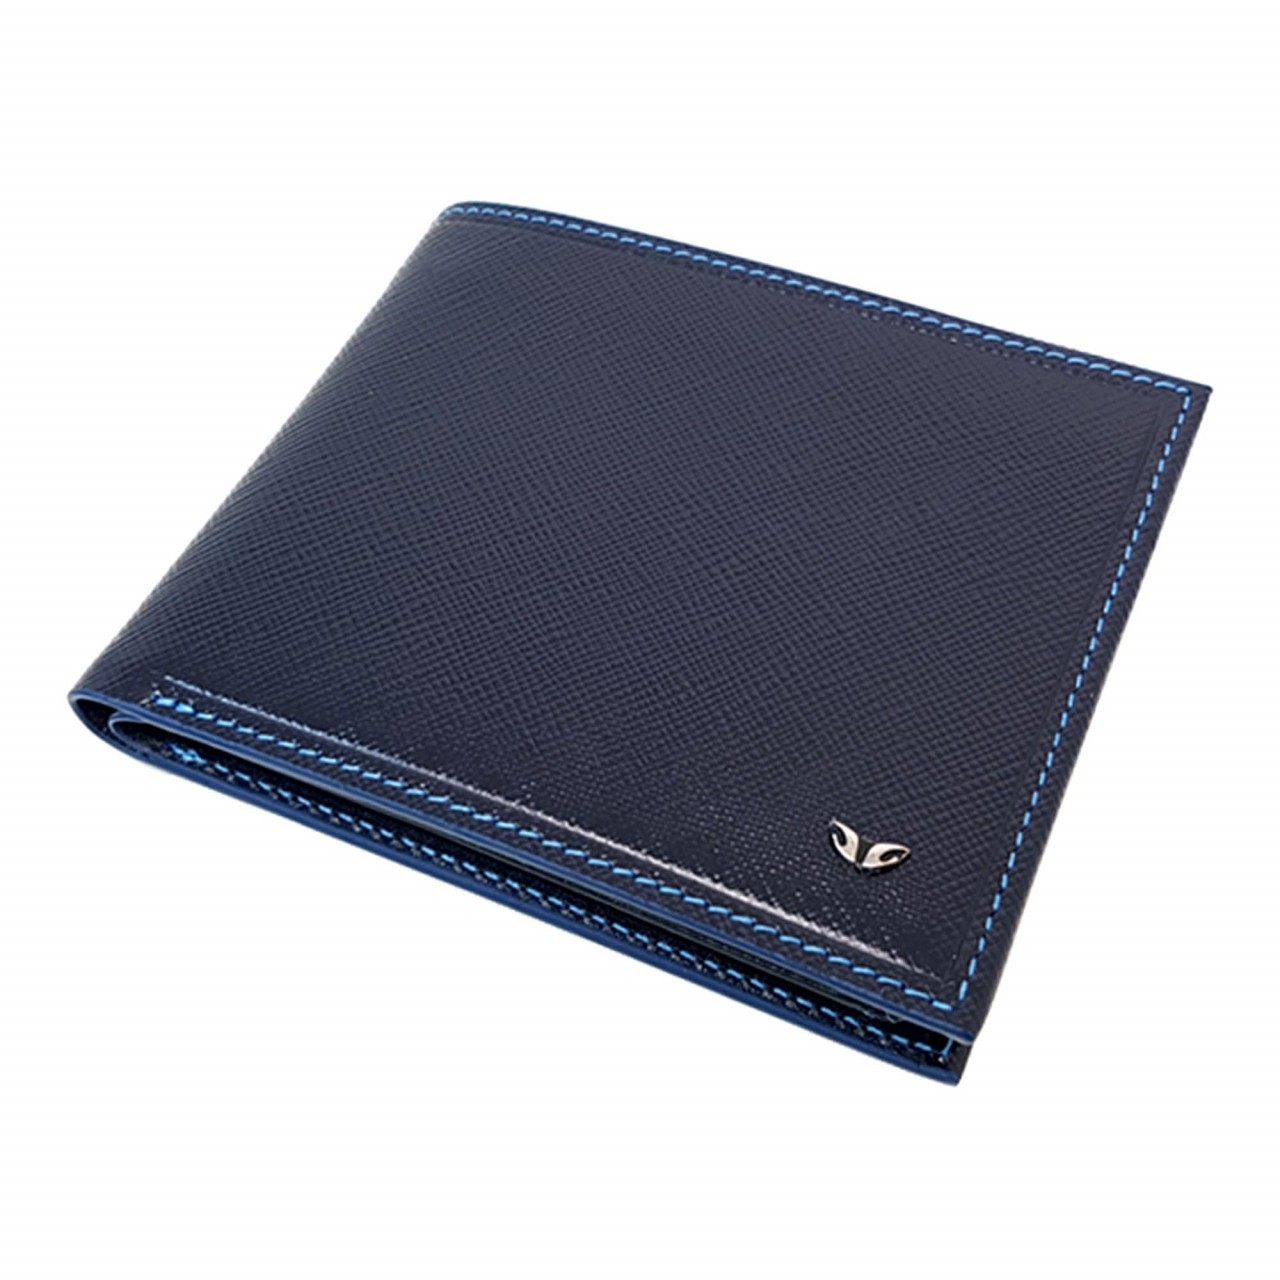 Stamped leather wallet in blue